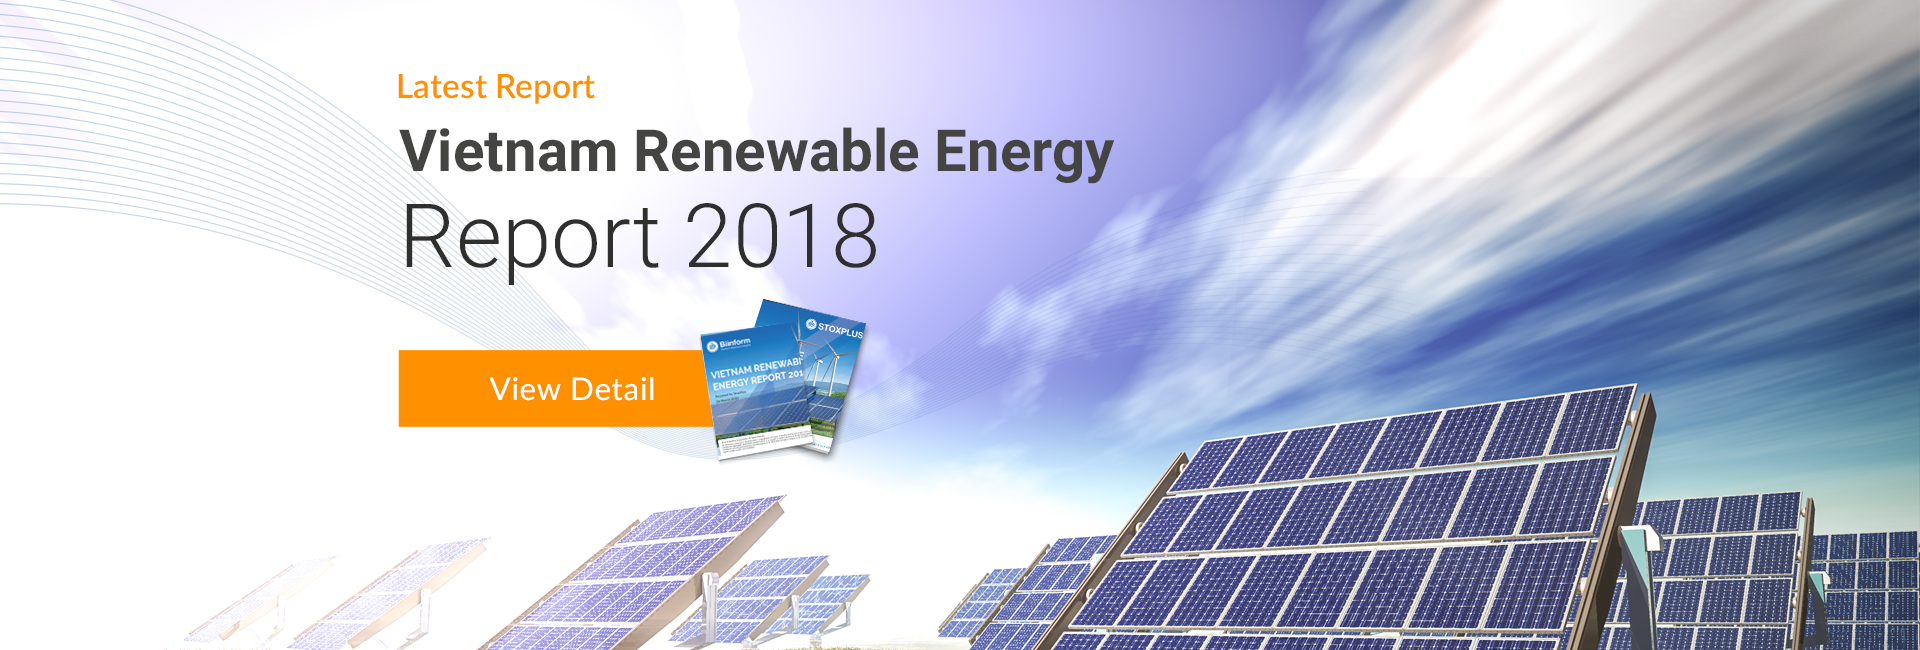 Vietnam Renewable Energy Report 2018